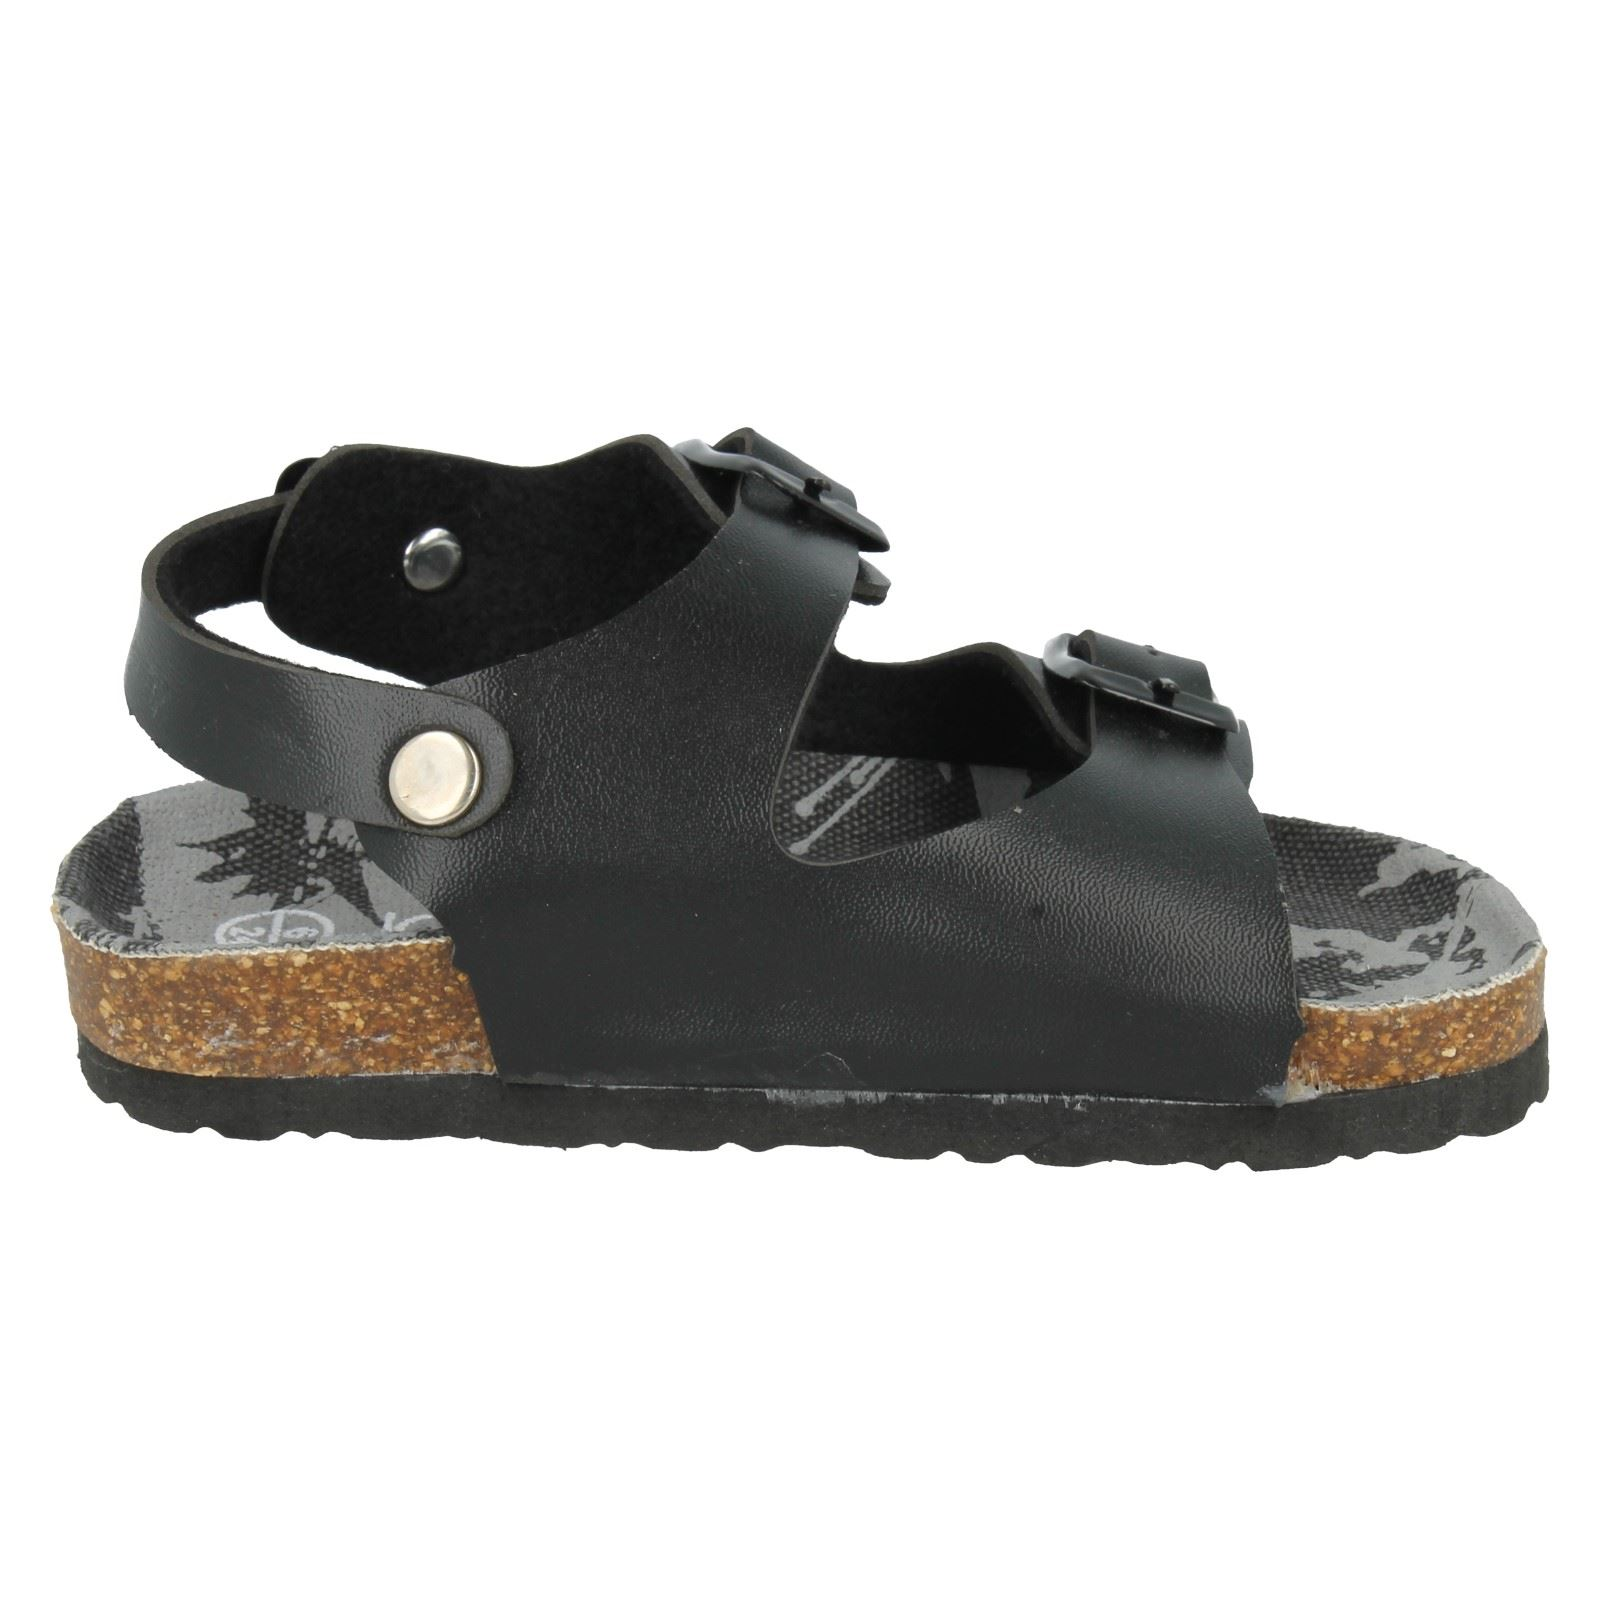 Boys JCDees Sandals The Style - N0033